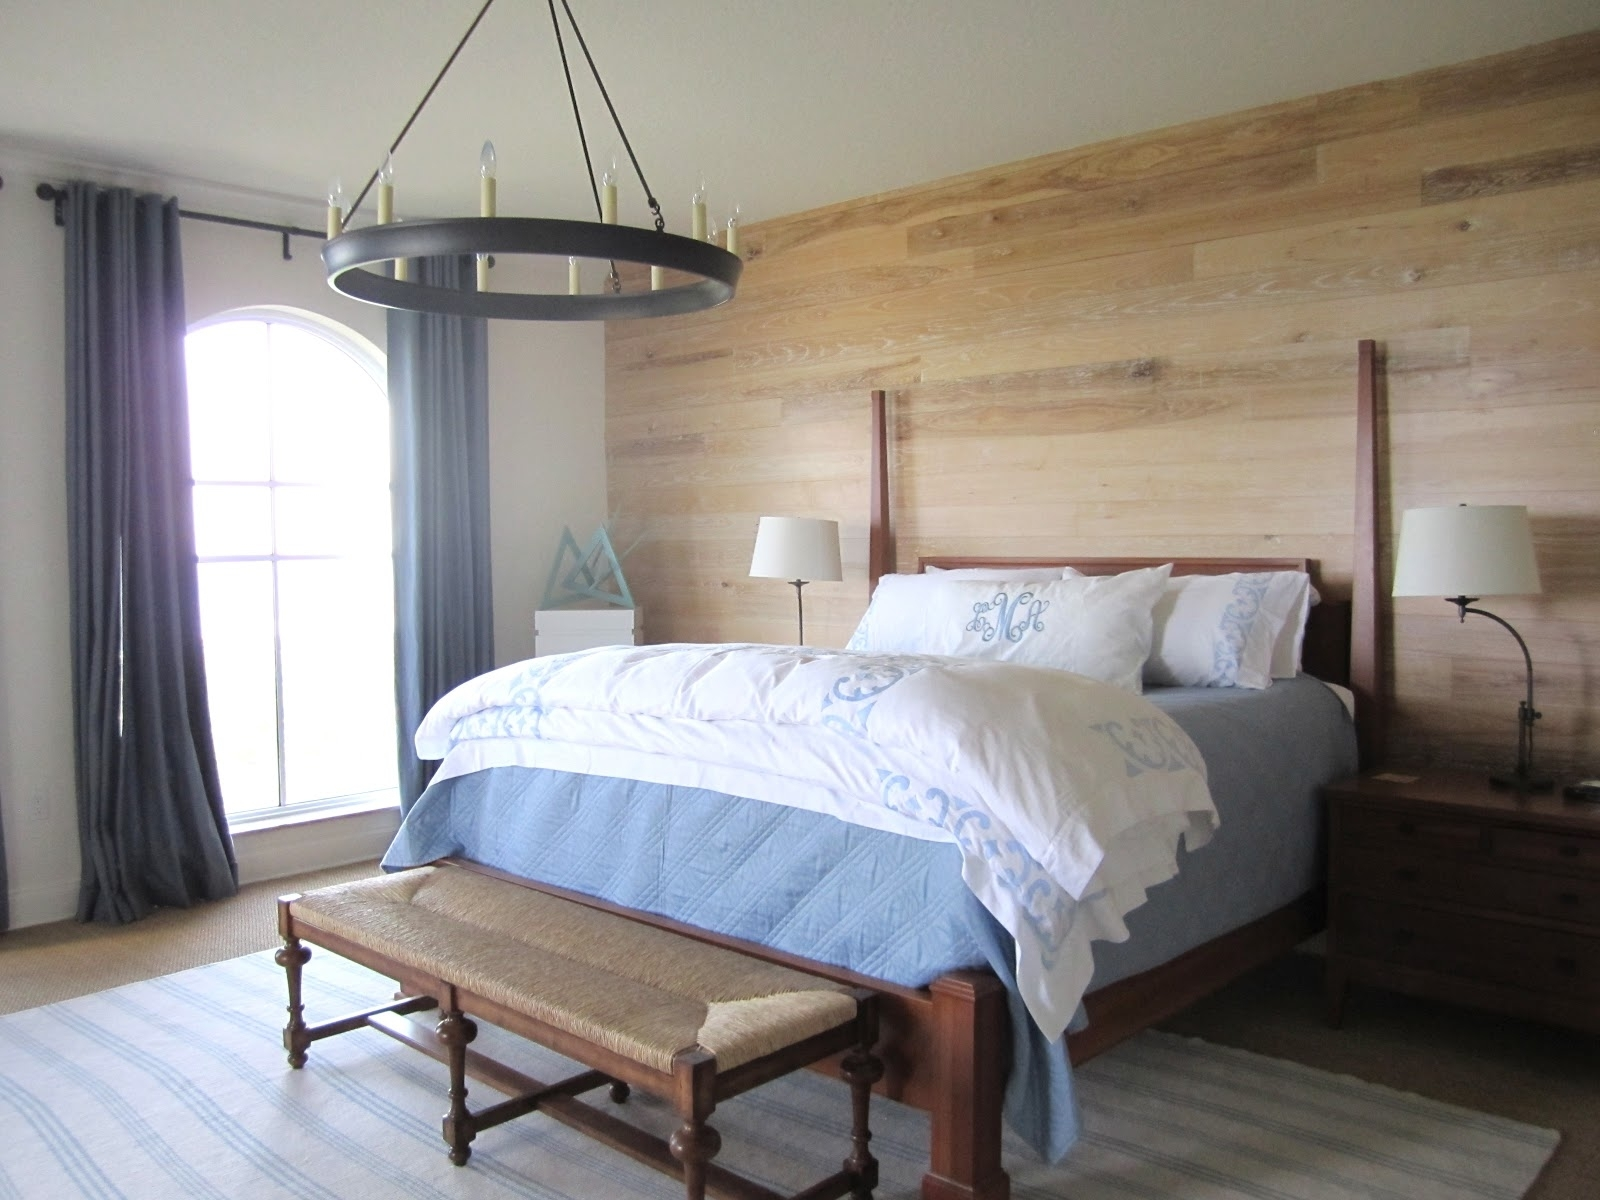 Bedroom Design: Accent Wallpaper Ideas Wall Decor Accent Wall Regarding Best And Newest Wall Accents For Small Bedroom (View 4 of 15)